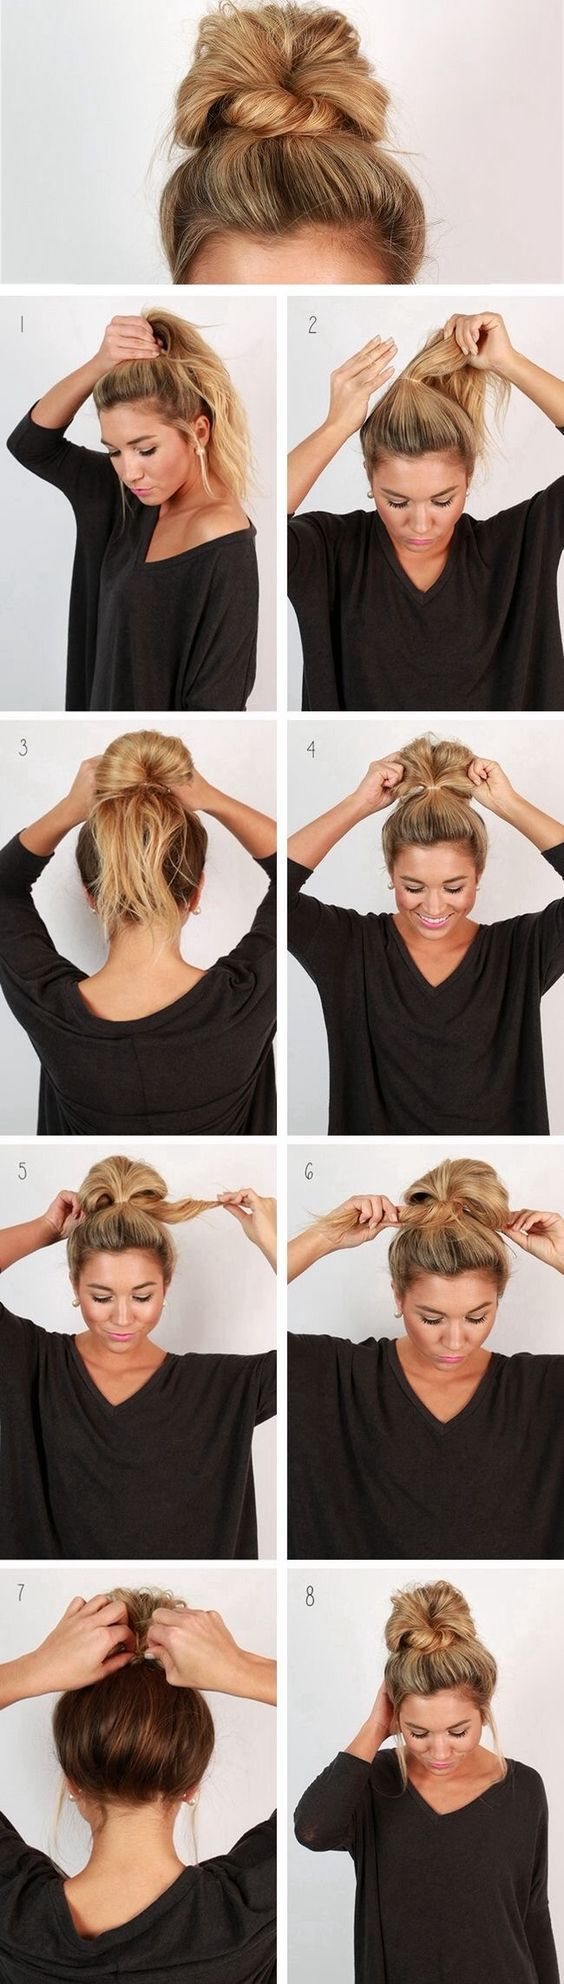 Simple and easy hairstyle tutorials for daily look hairstyle